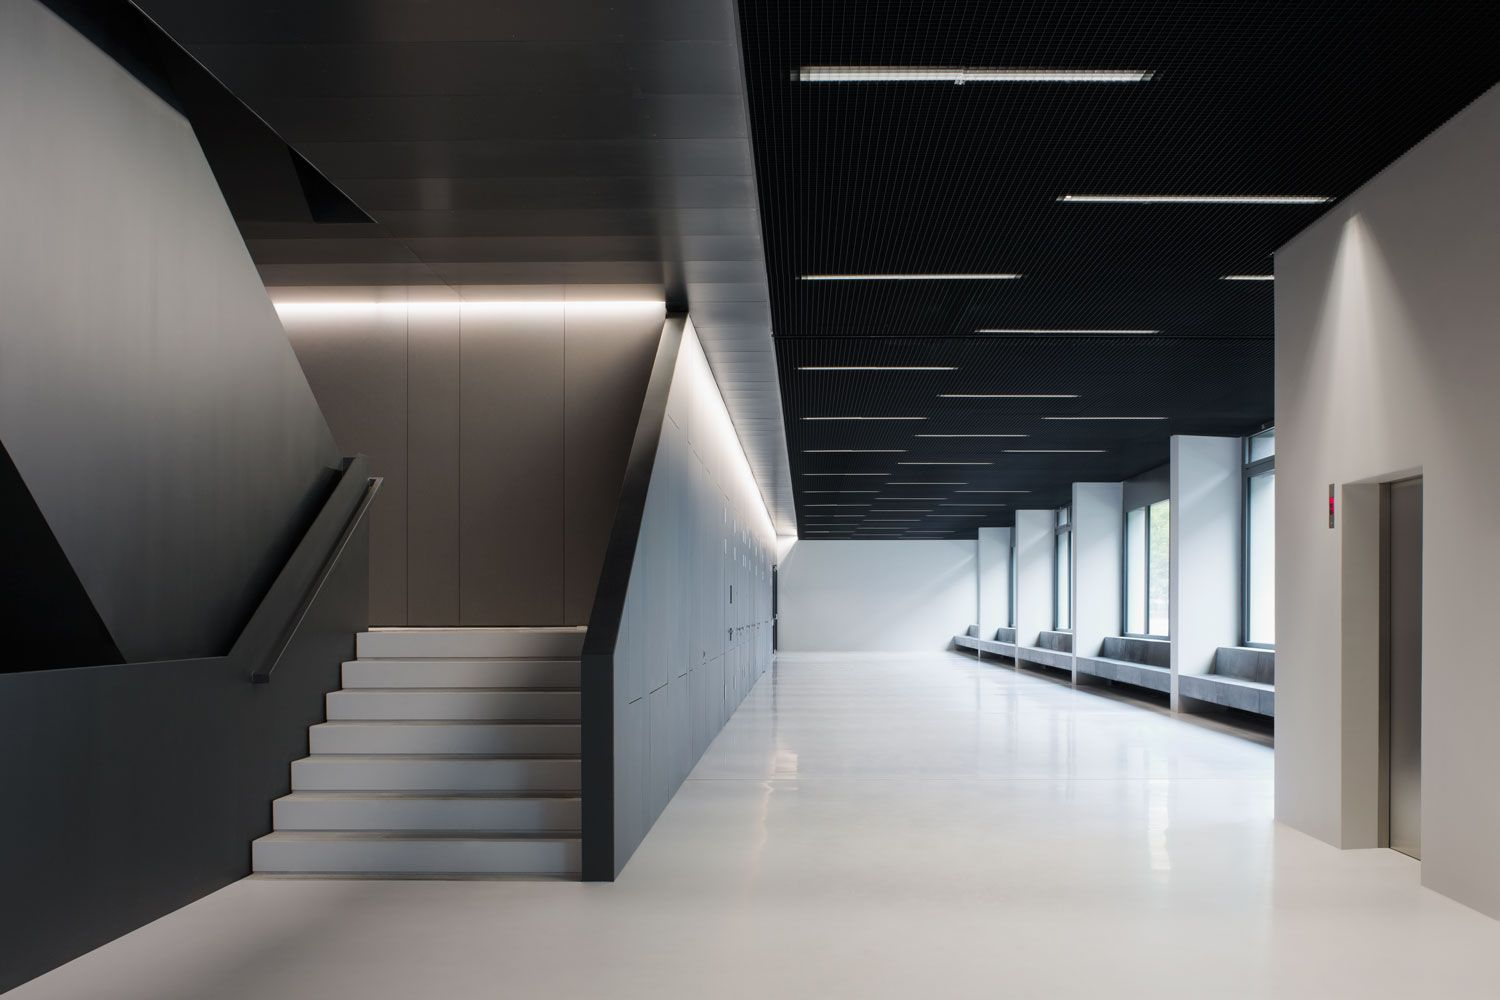 Innenarchitektur Chemnitz fibre cement panels used in interior design chemnitz